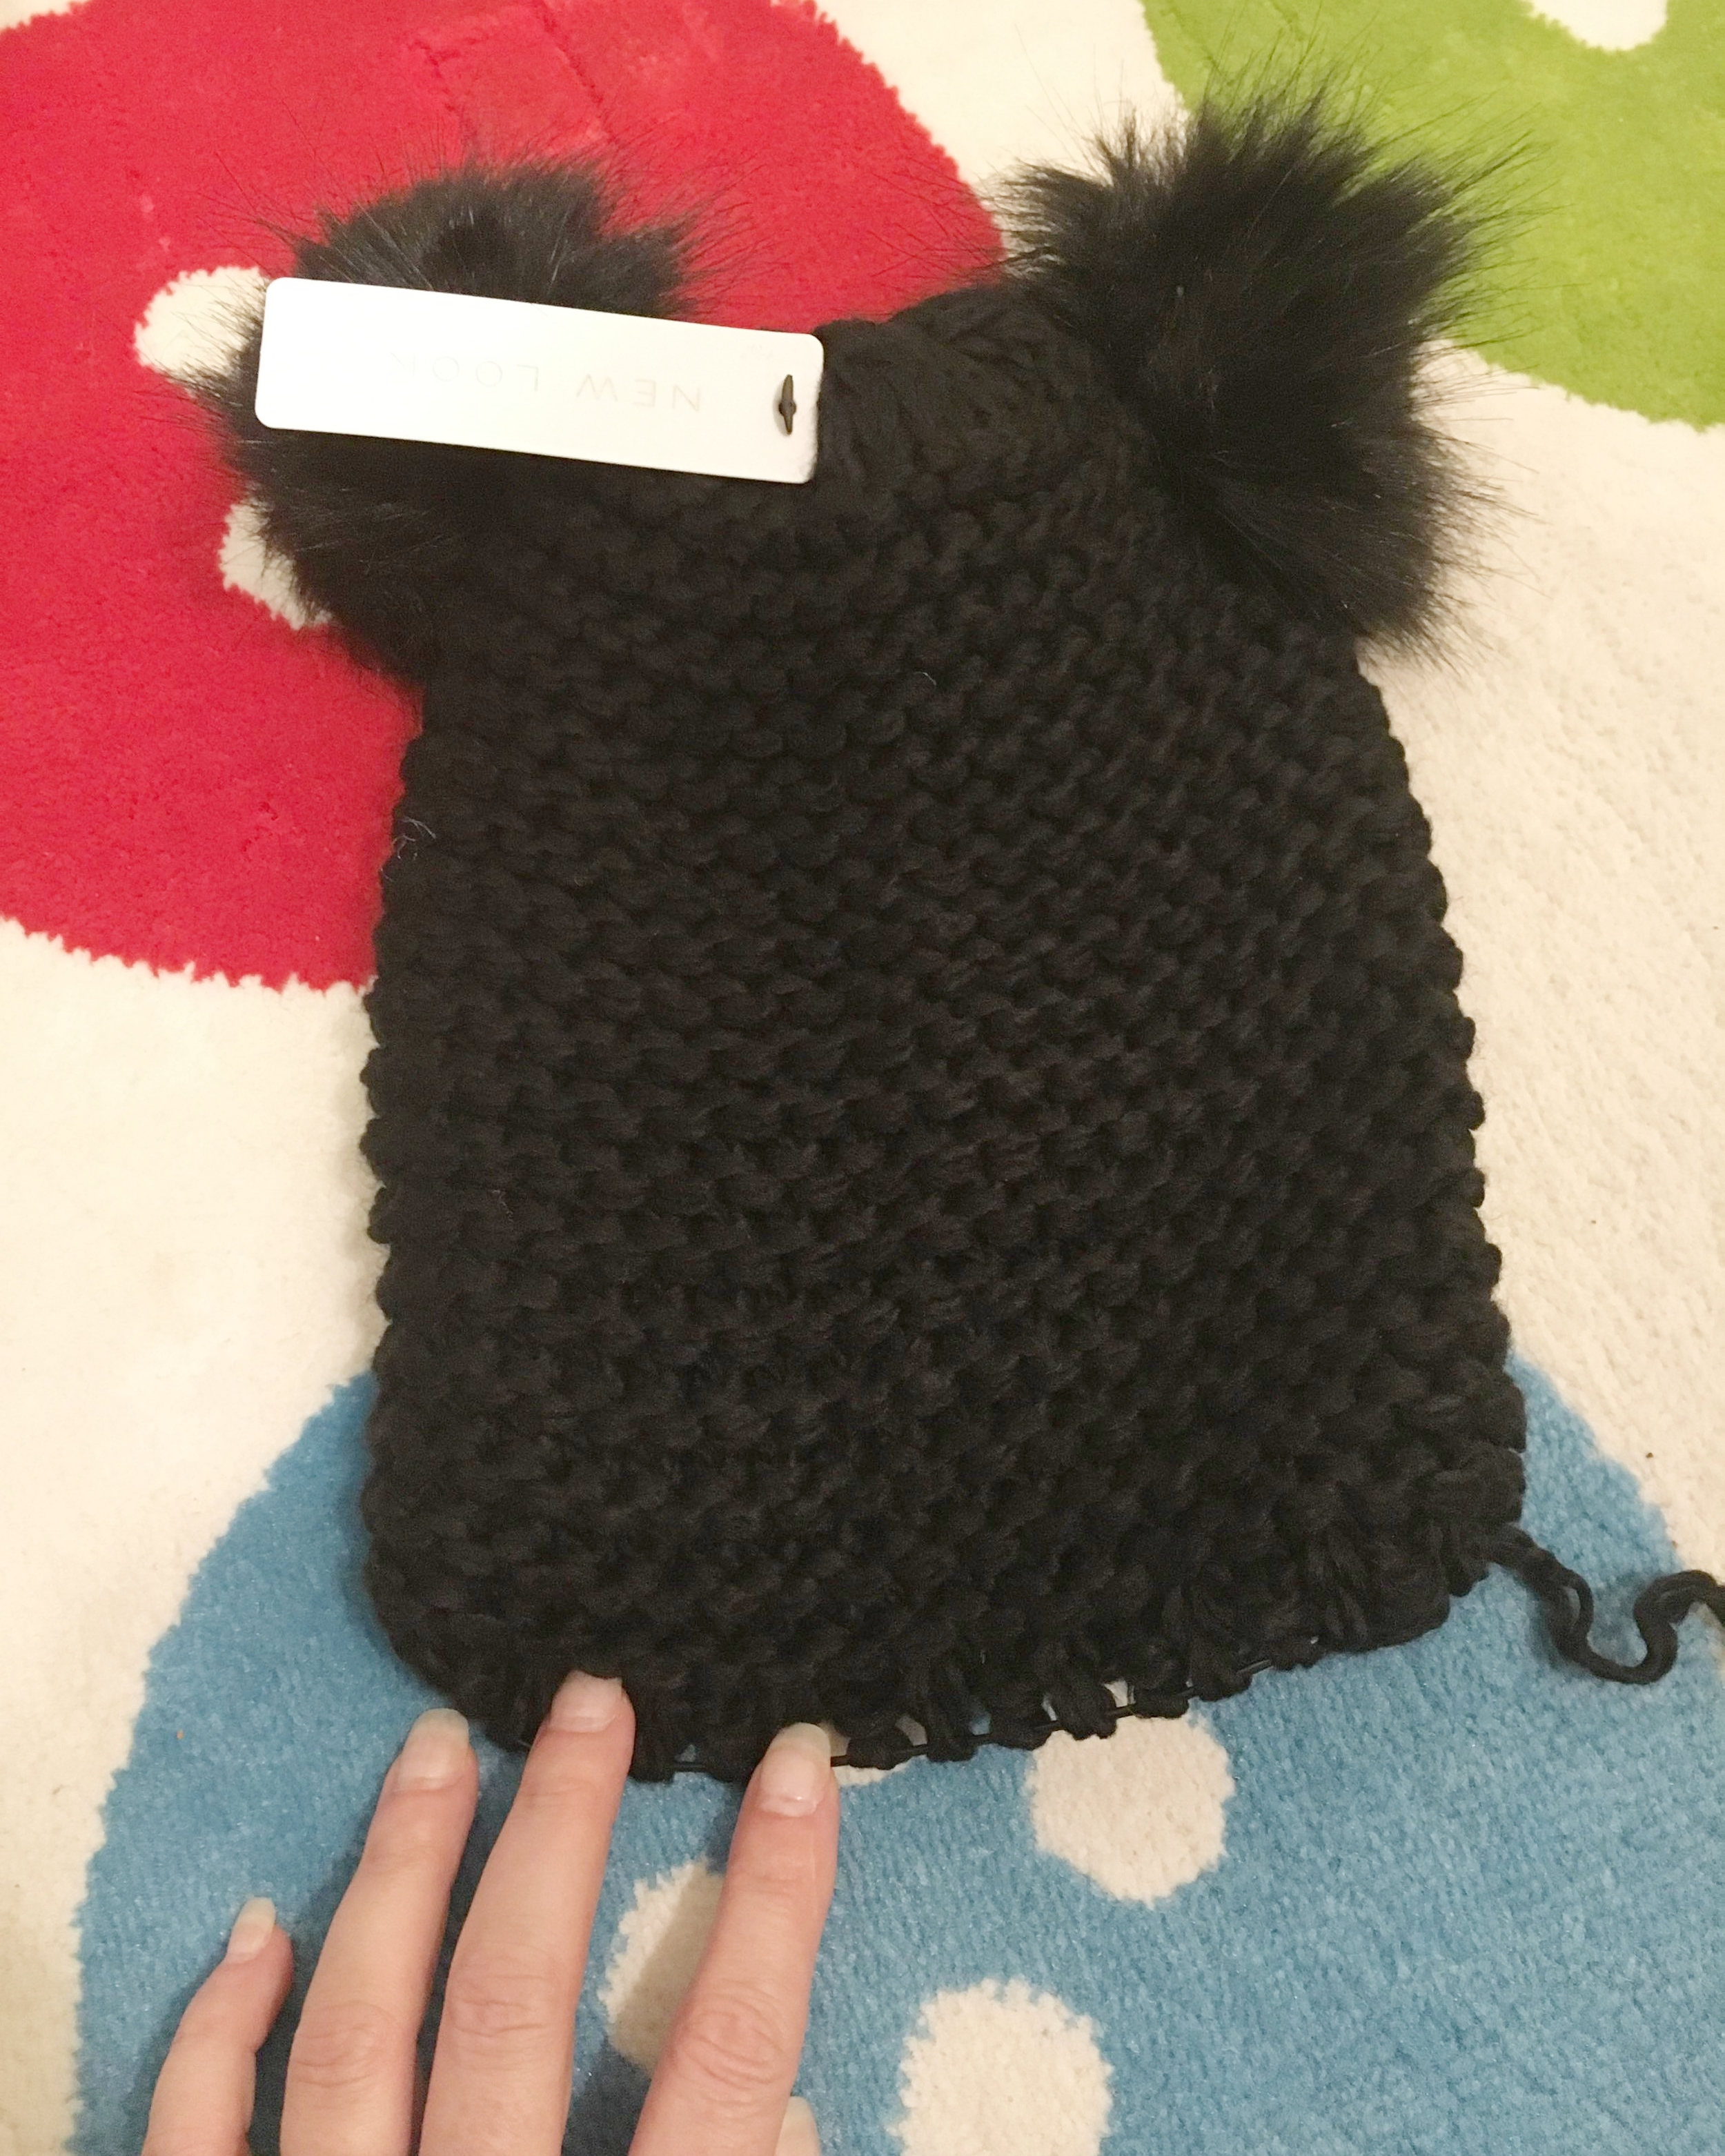 Hat after the brim was unravelled. Cute, but a little unfinished looking now. And man photographing black yarn is hard!